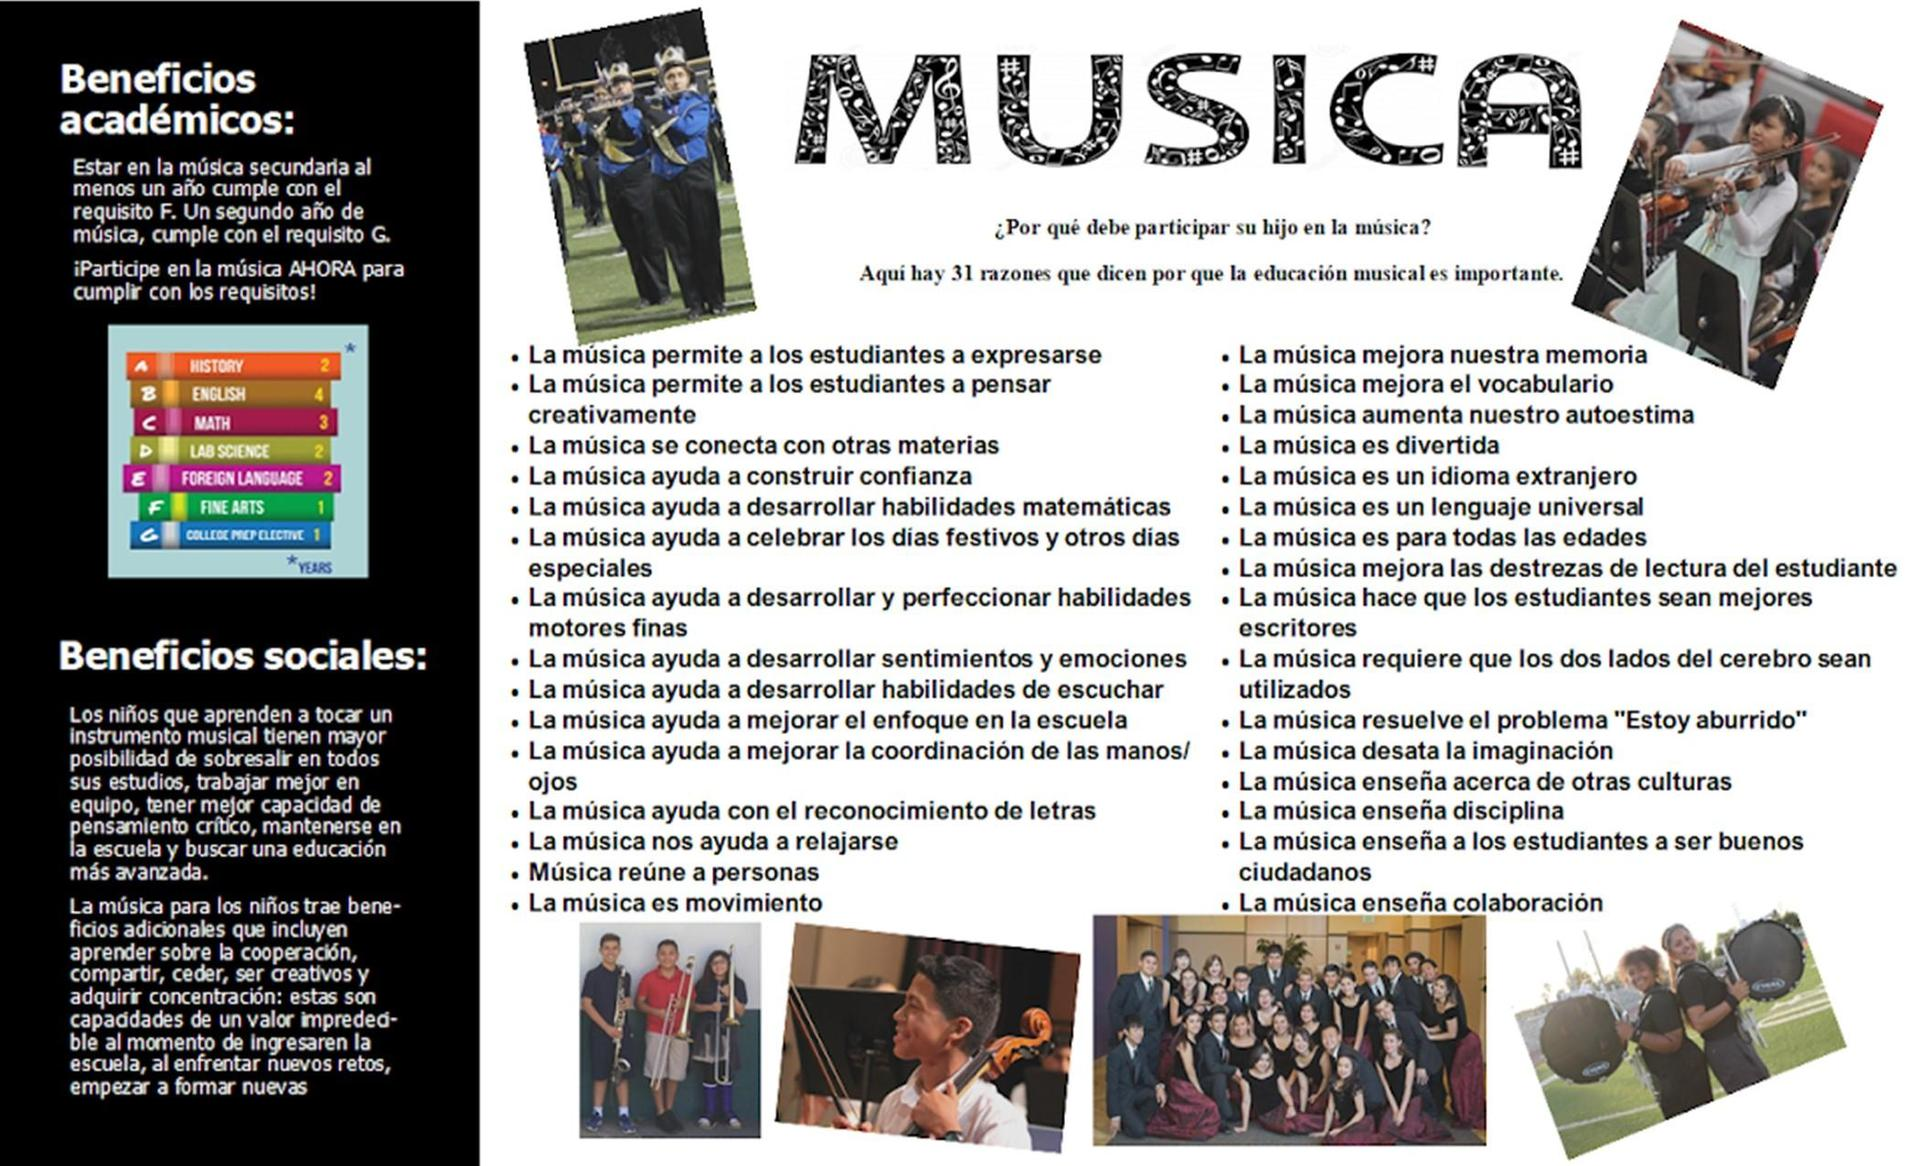 31 Reasons Why Joining Music is Important - Spanish